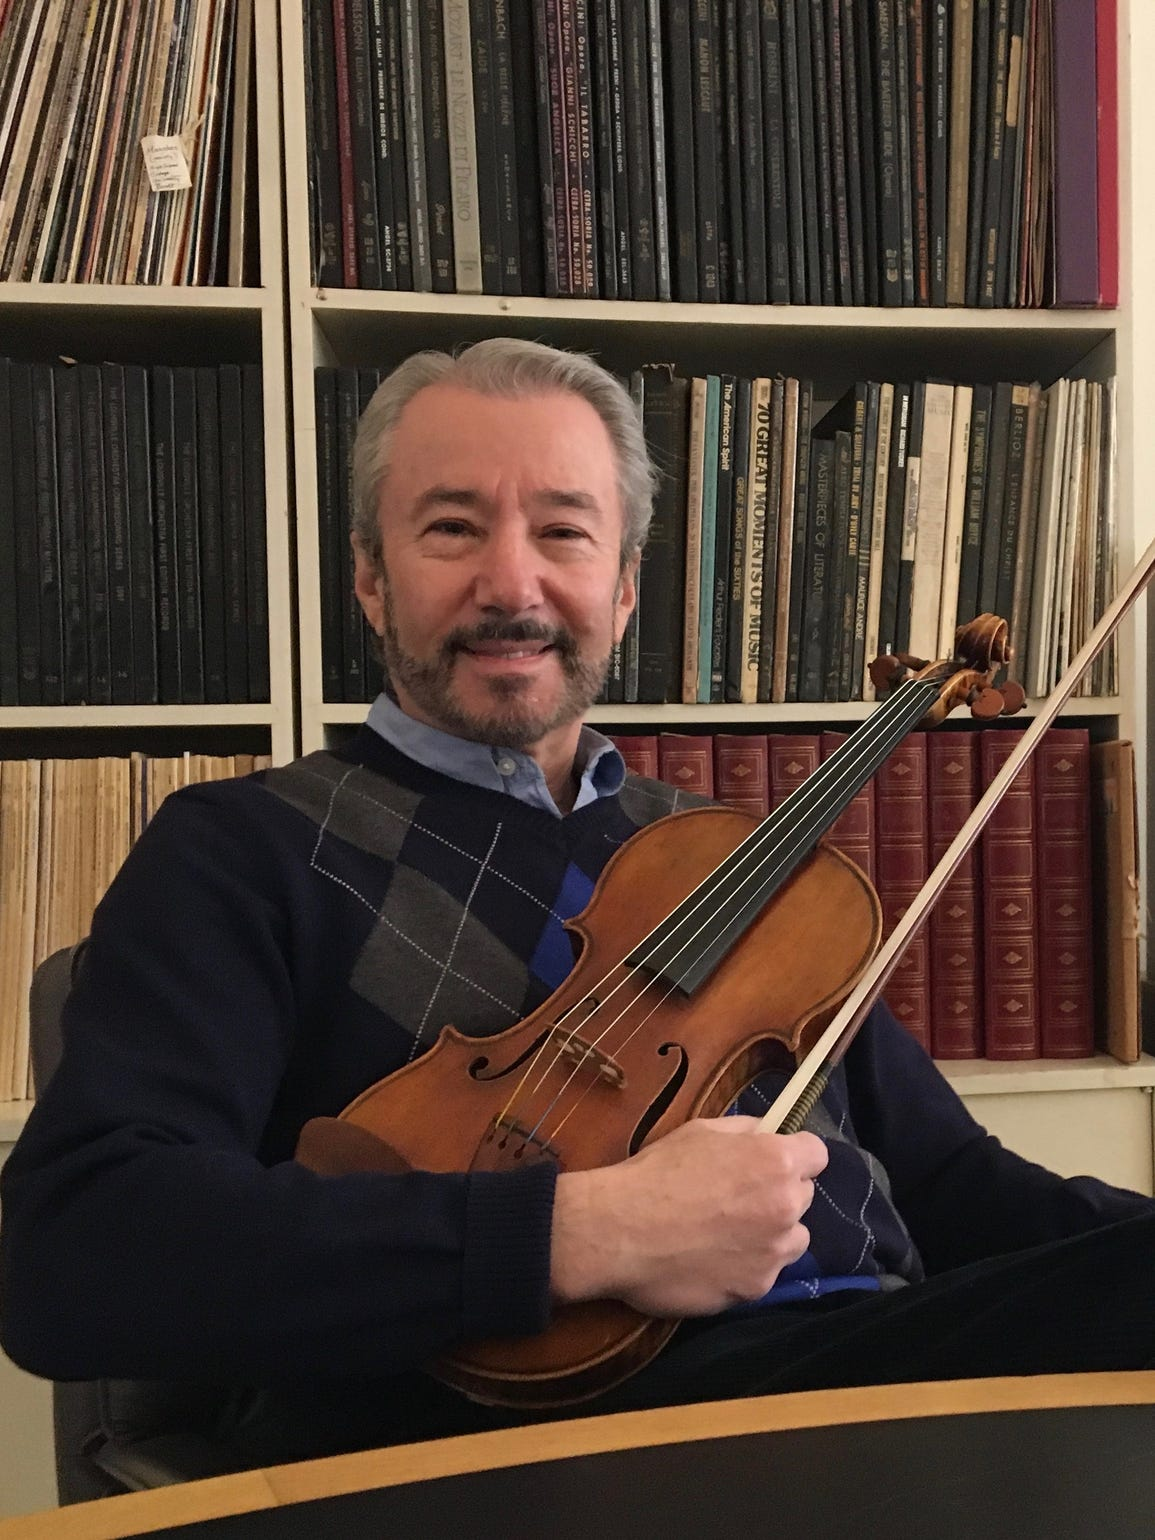 Founder and Artistic Director of Heifetz International